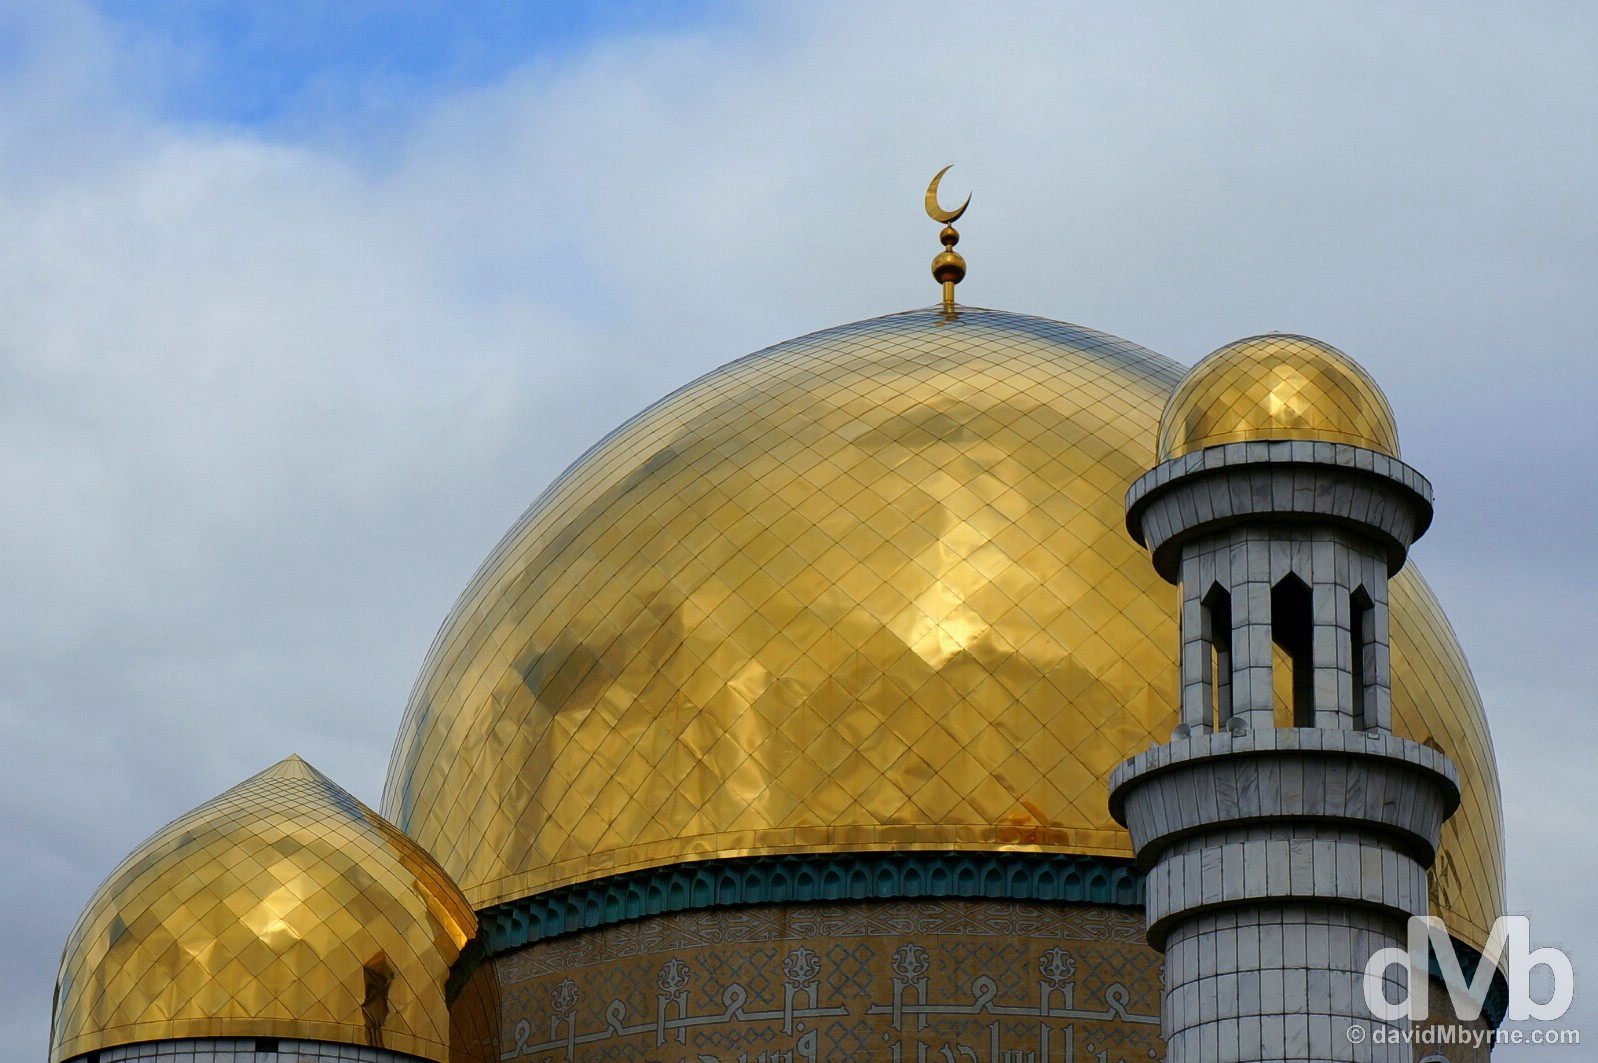 Golden domes of the Central Mosque in Almaty, Kazakhstan. February 13, 2015.